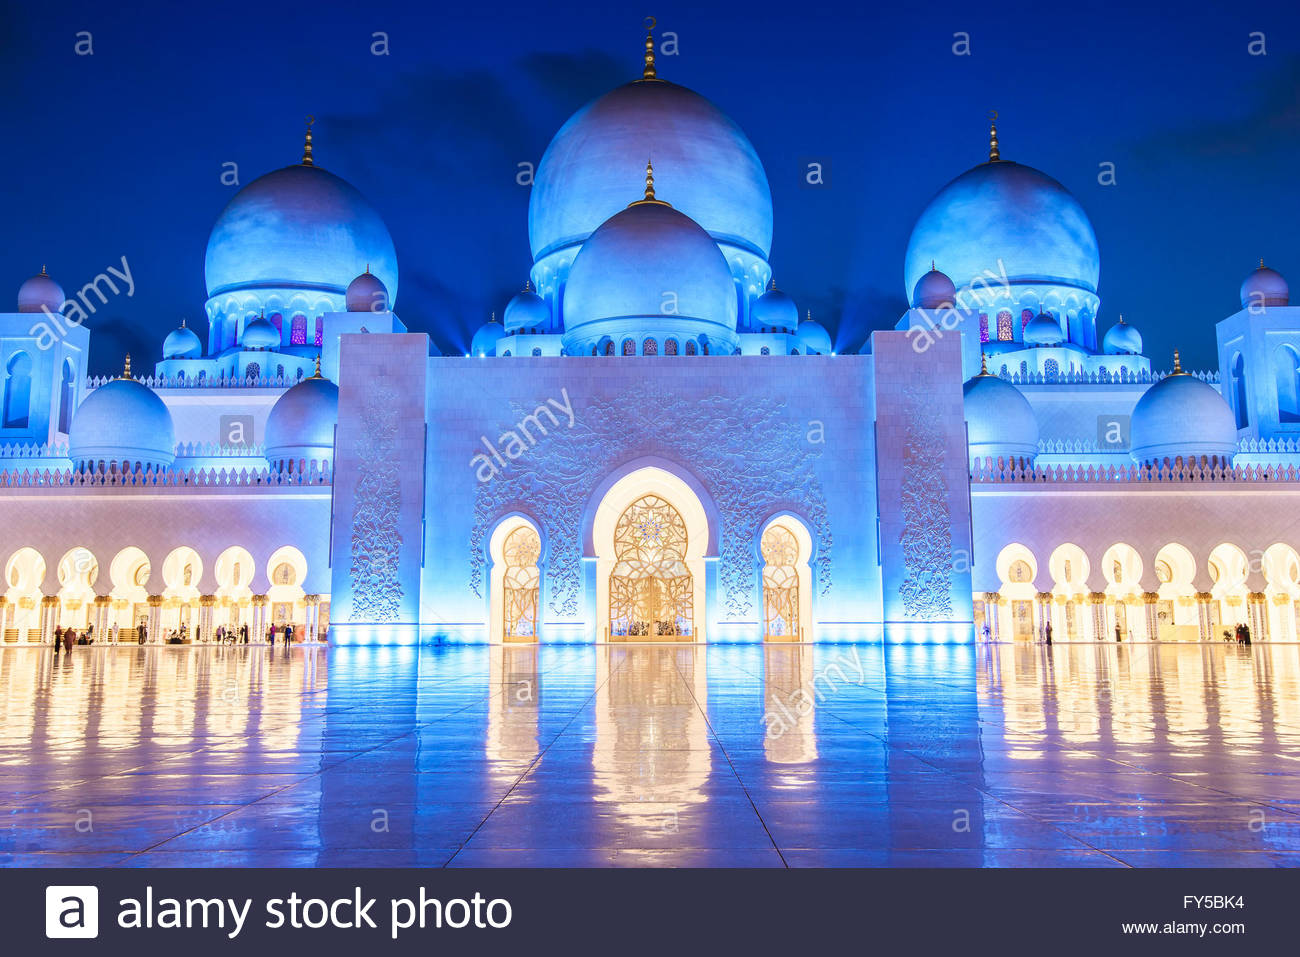 Abu Dhabi hosts the third largest mosque in the world - after the ones in Mecca and Madina in Saudi Arabia. It is - Stock Image